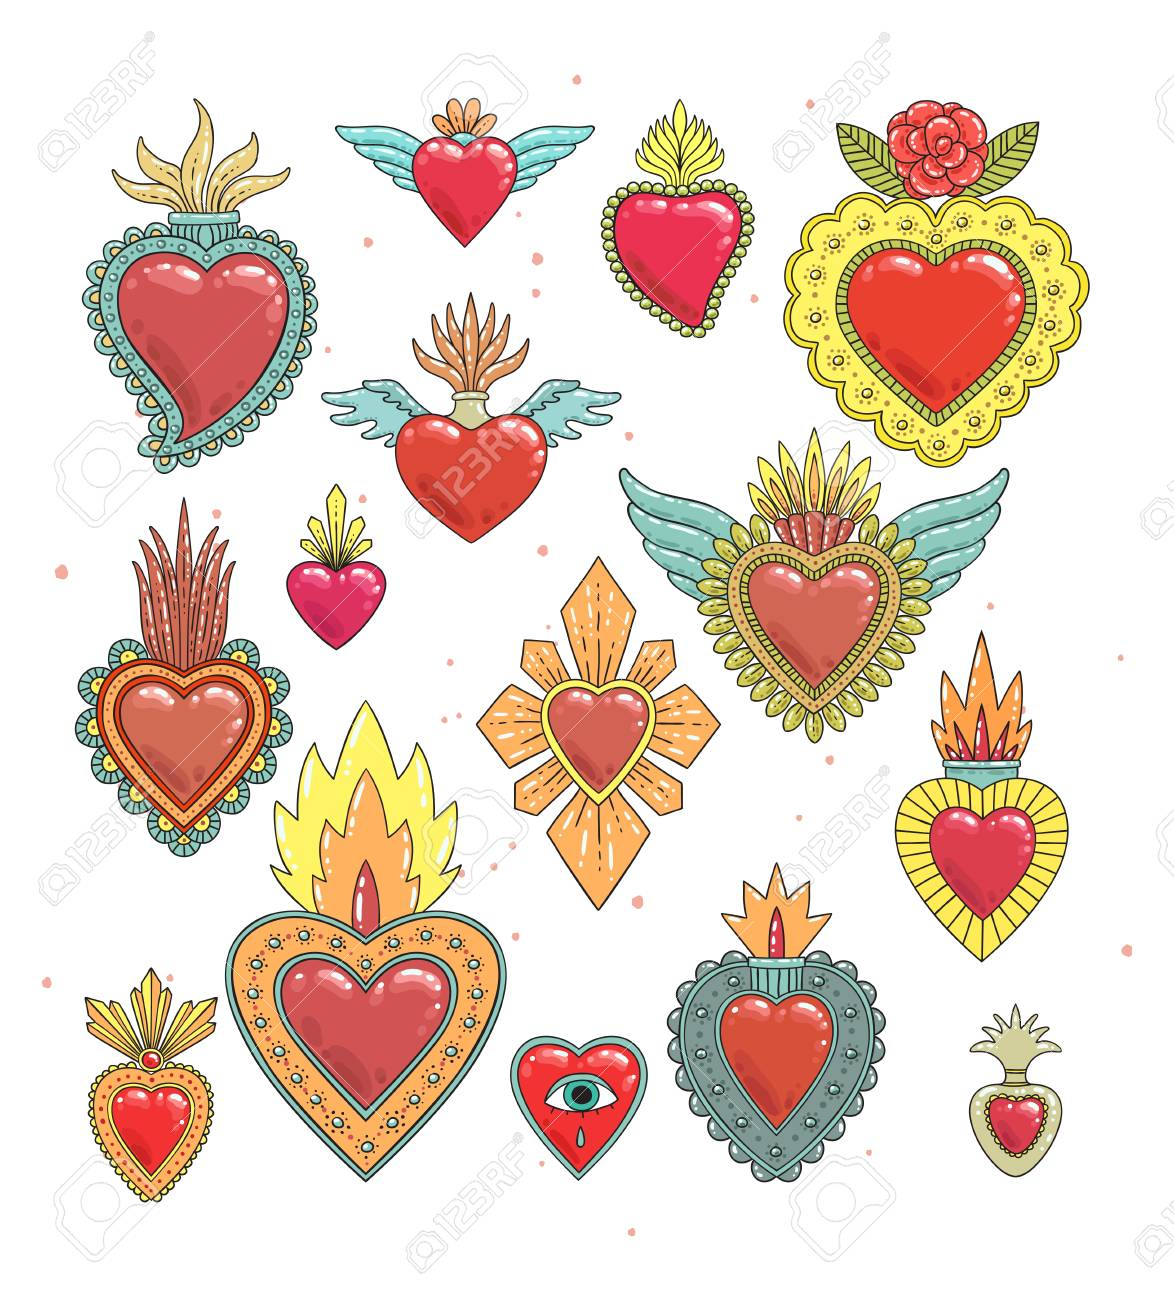 Sacred mexican heart color set - 93336353